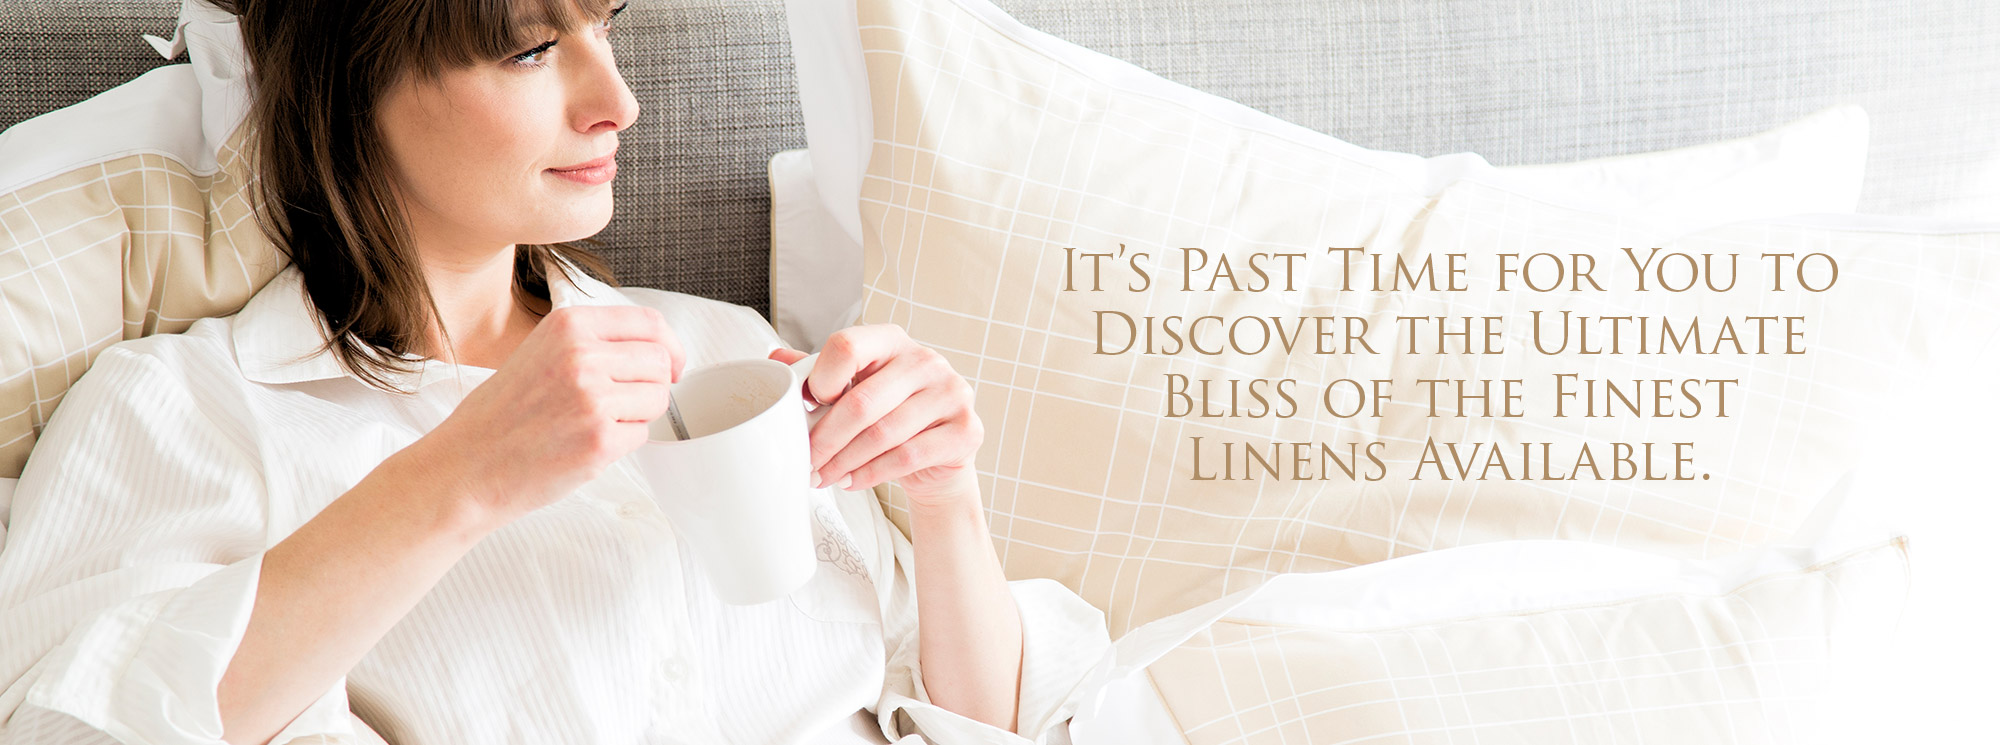 The Ultimate Linens